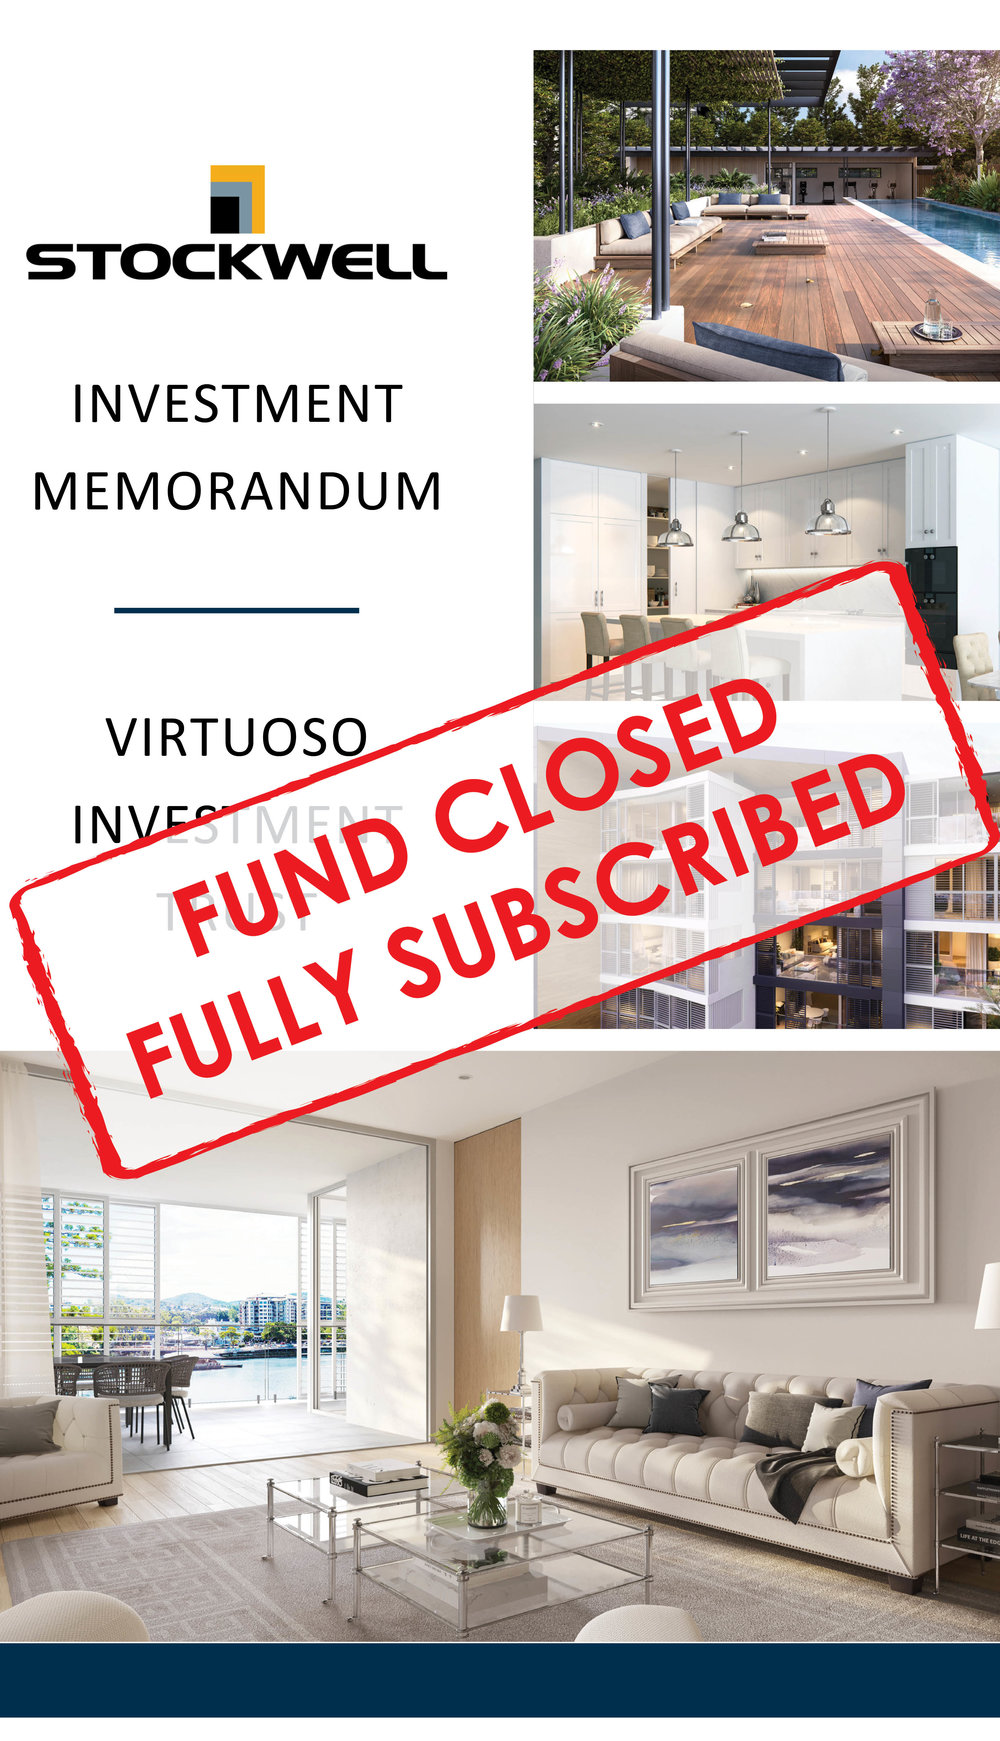 Virtuoso Investment Trust